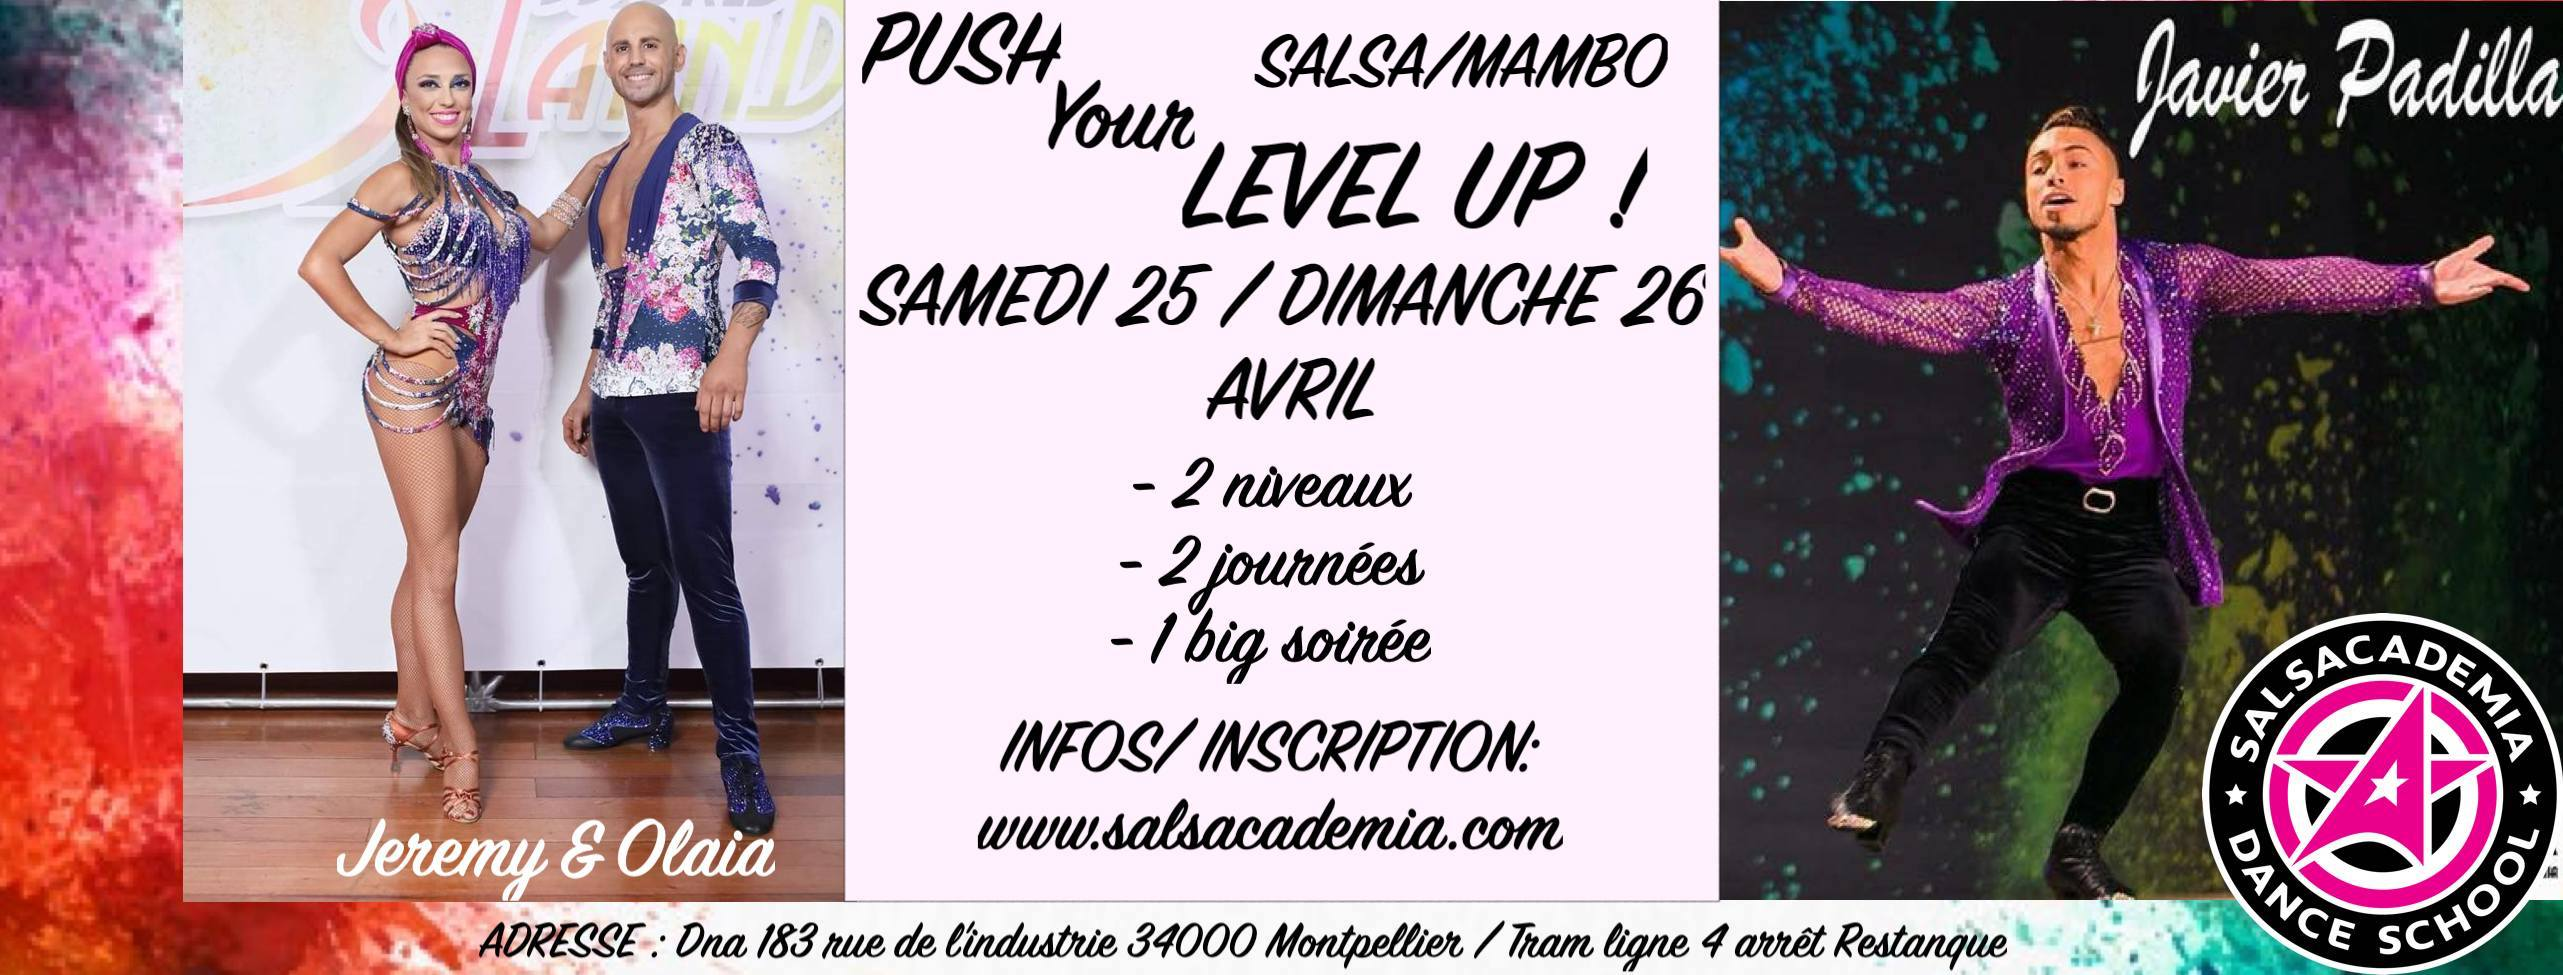 PUSH YOUR LEVEL UP guest Javier Padilla / Jeremy&Olaia